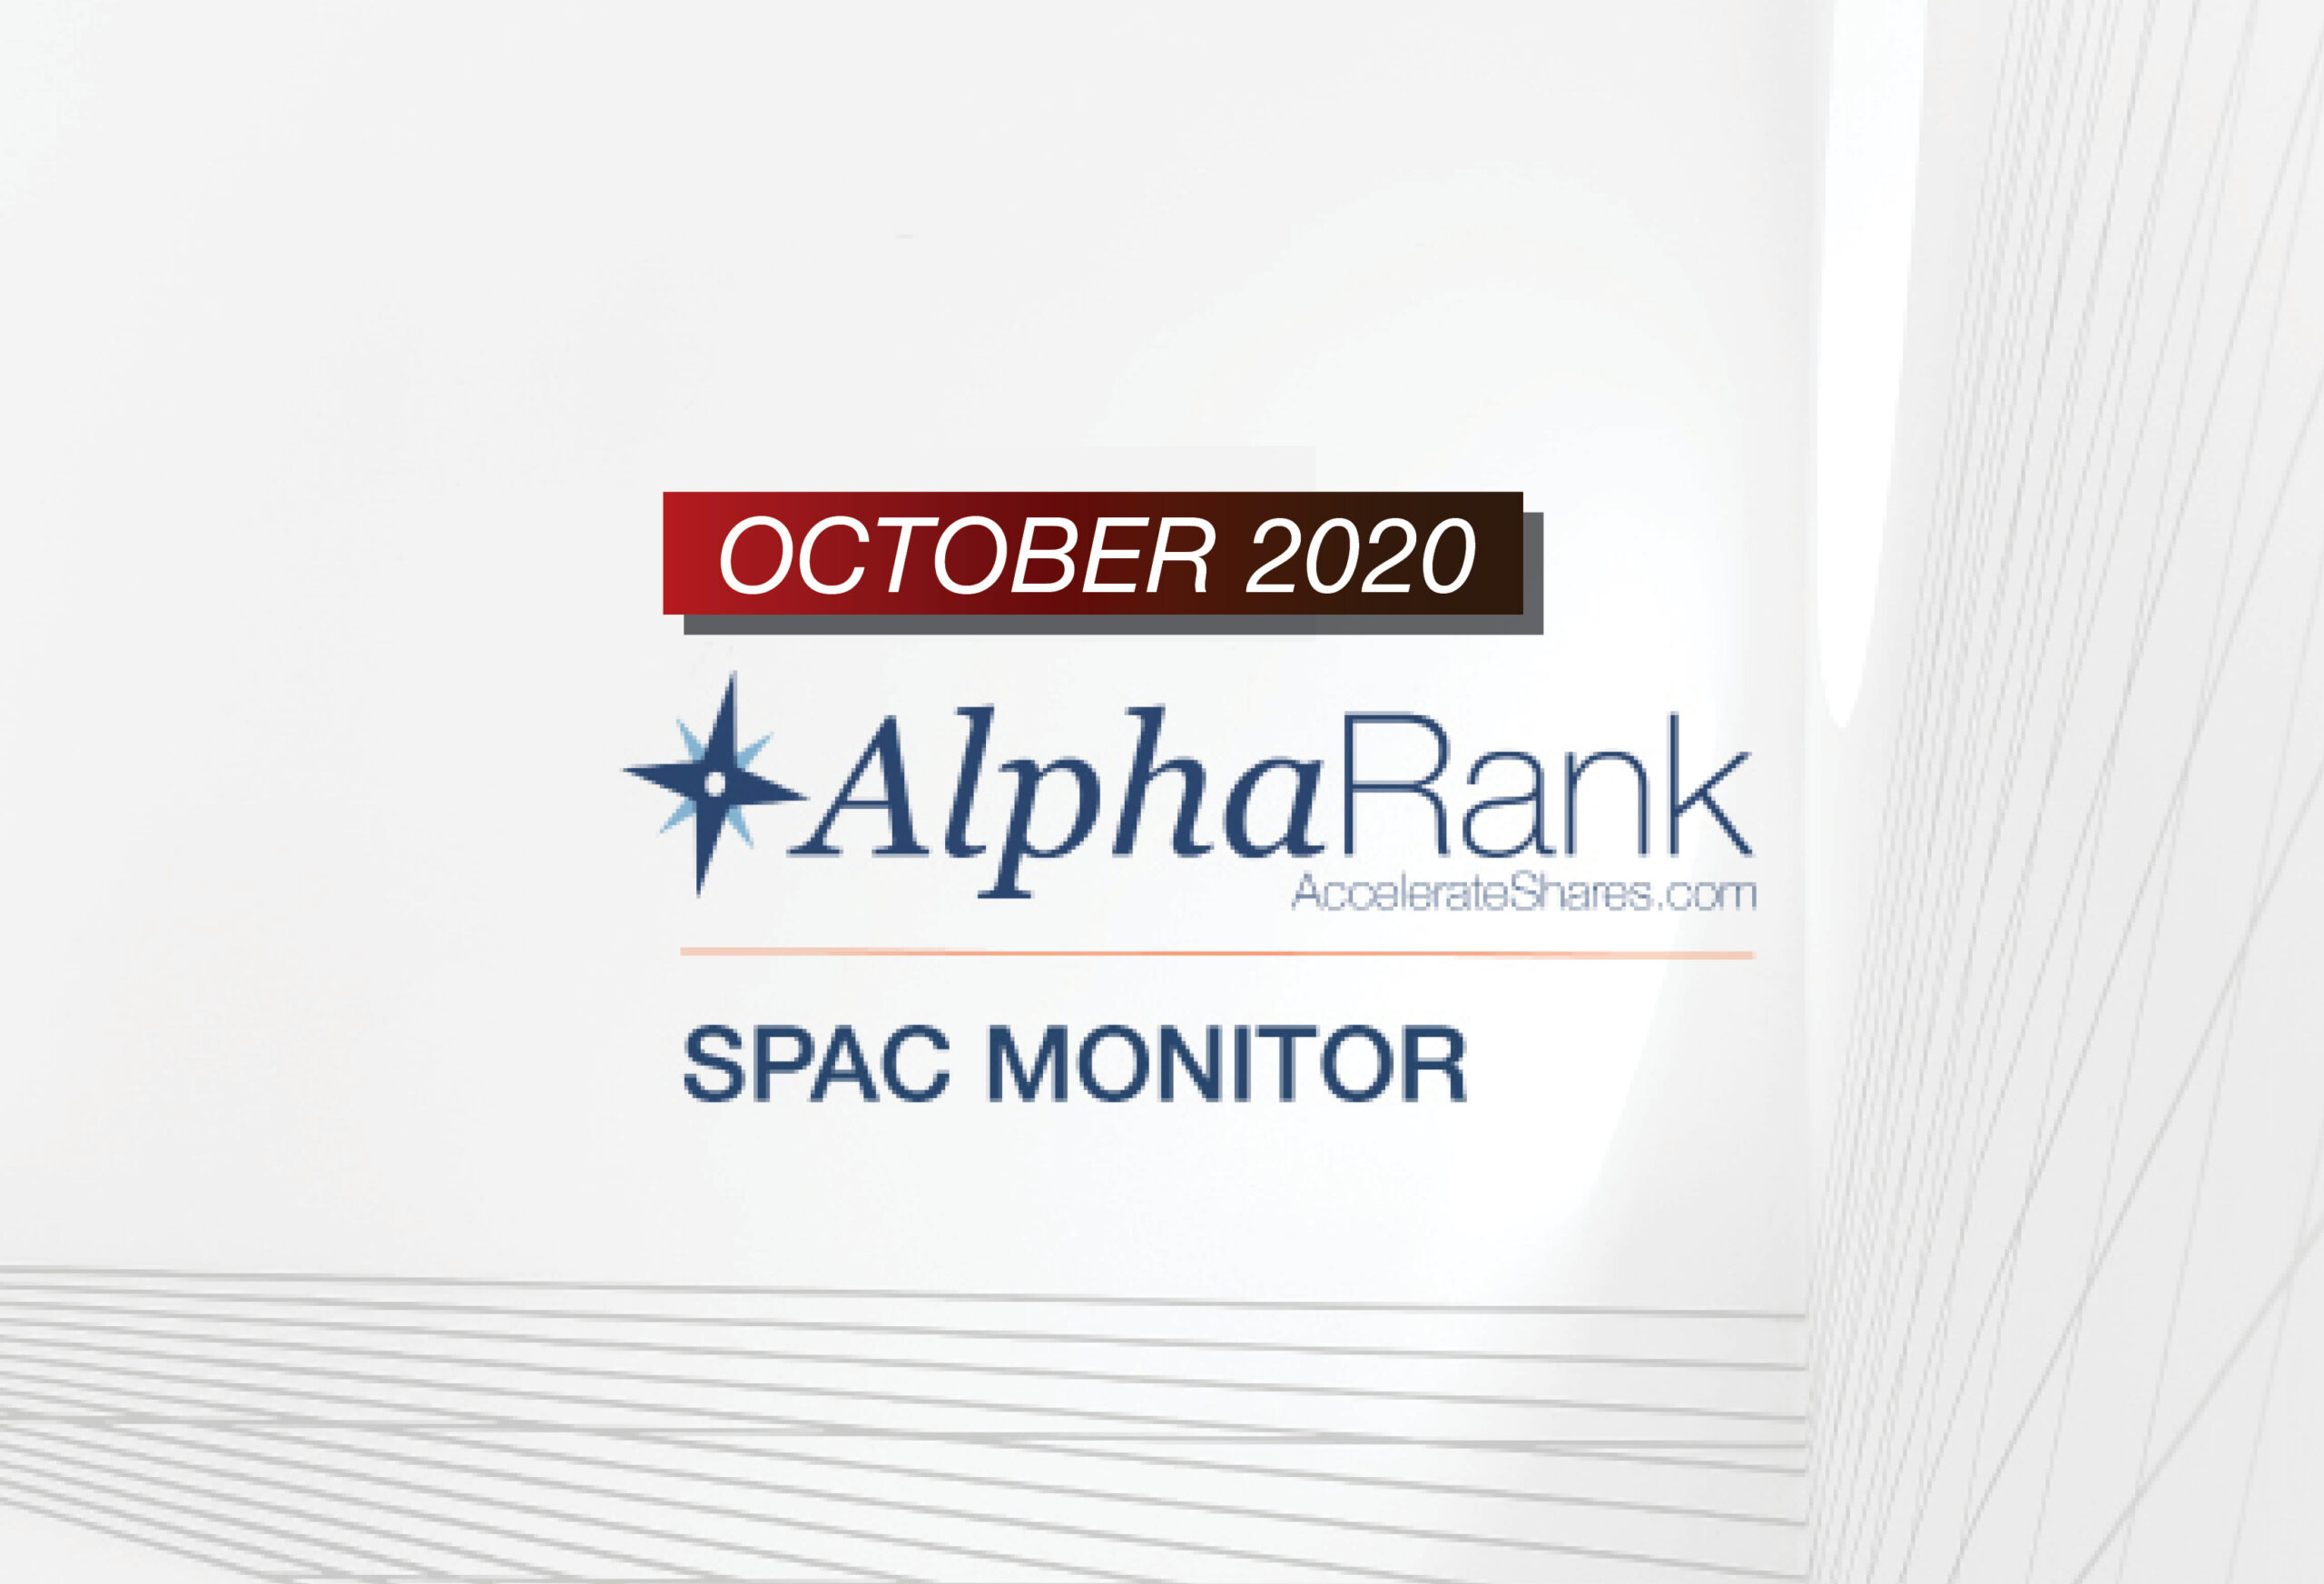 AlphaRank SPAC Monitor – October 2020